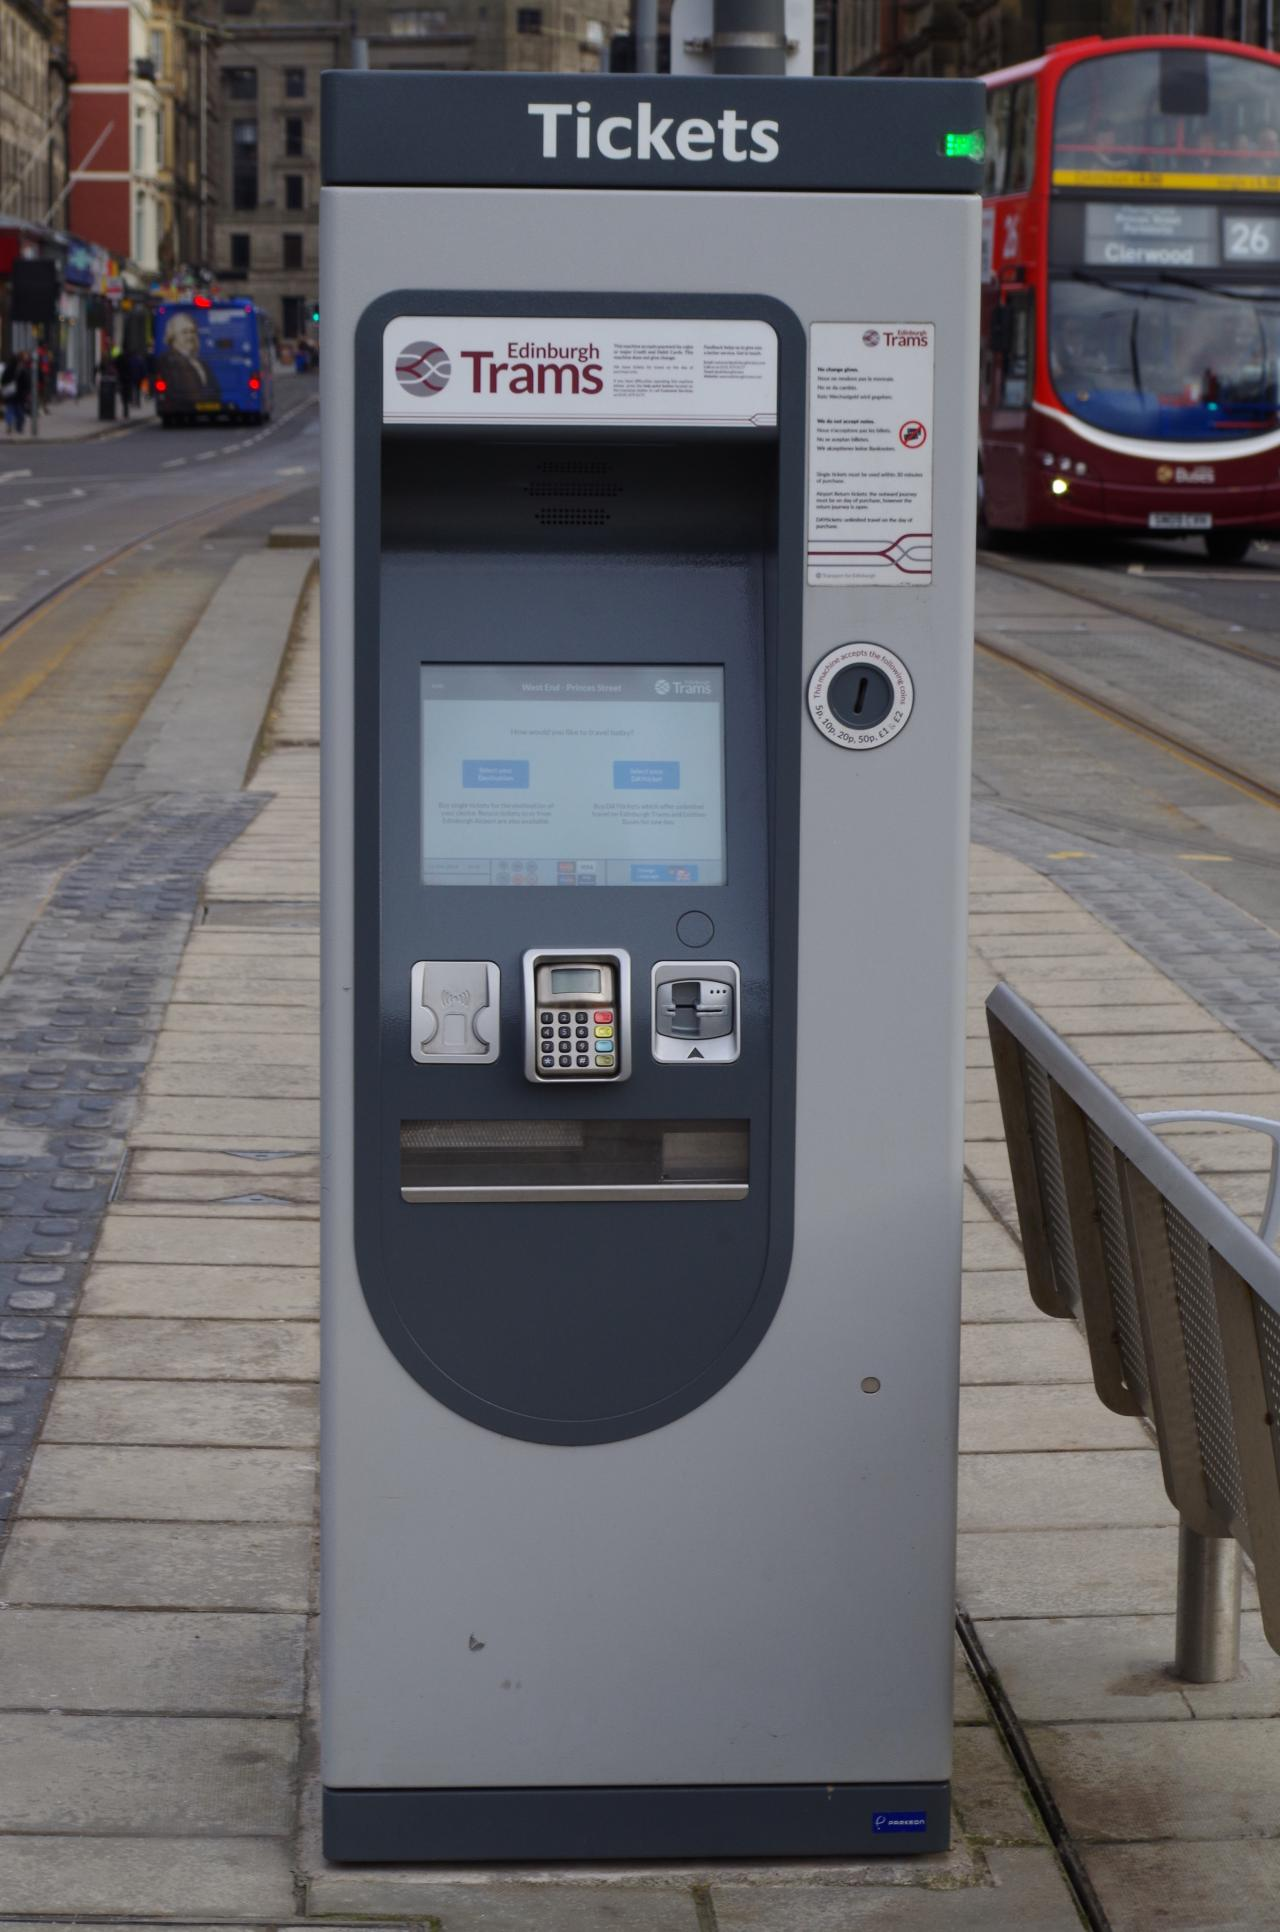 Edinburgh Trams Club Ticket Vending Machines Edinburgh